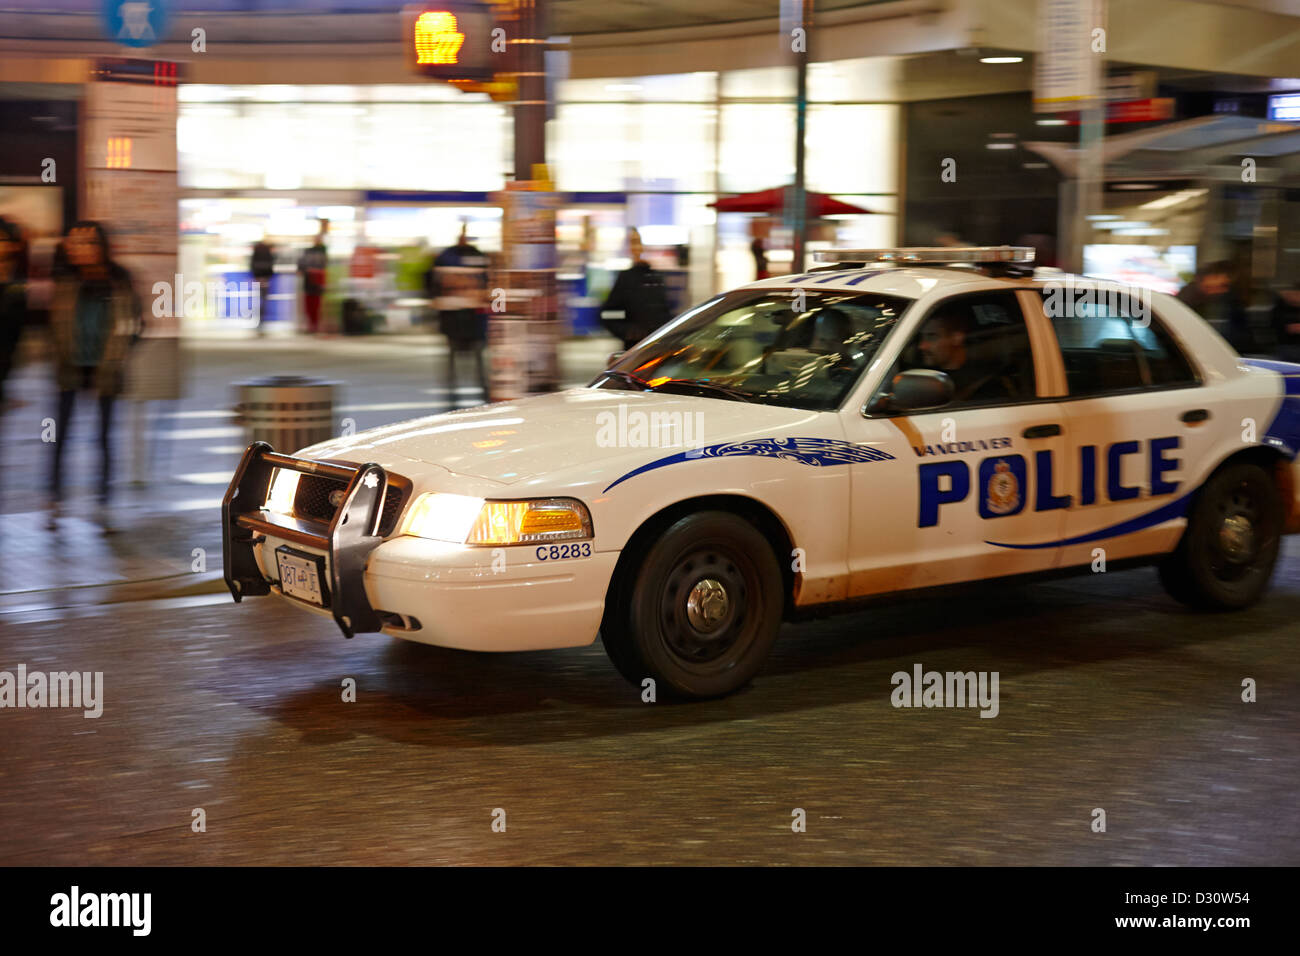 Vancouver police squad patrol car vehicle BC Canada deliberate motion blur Stock Photo